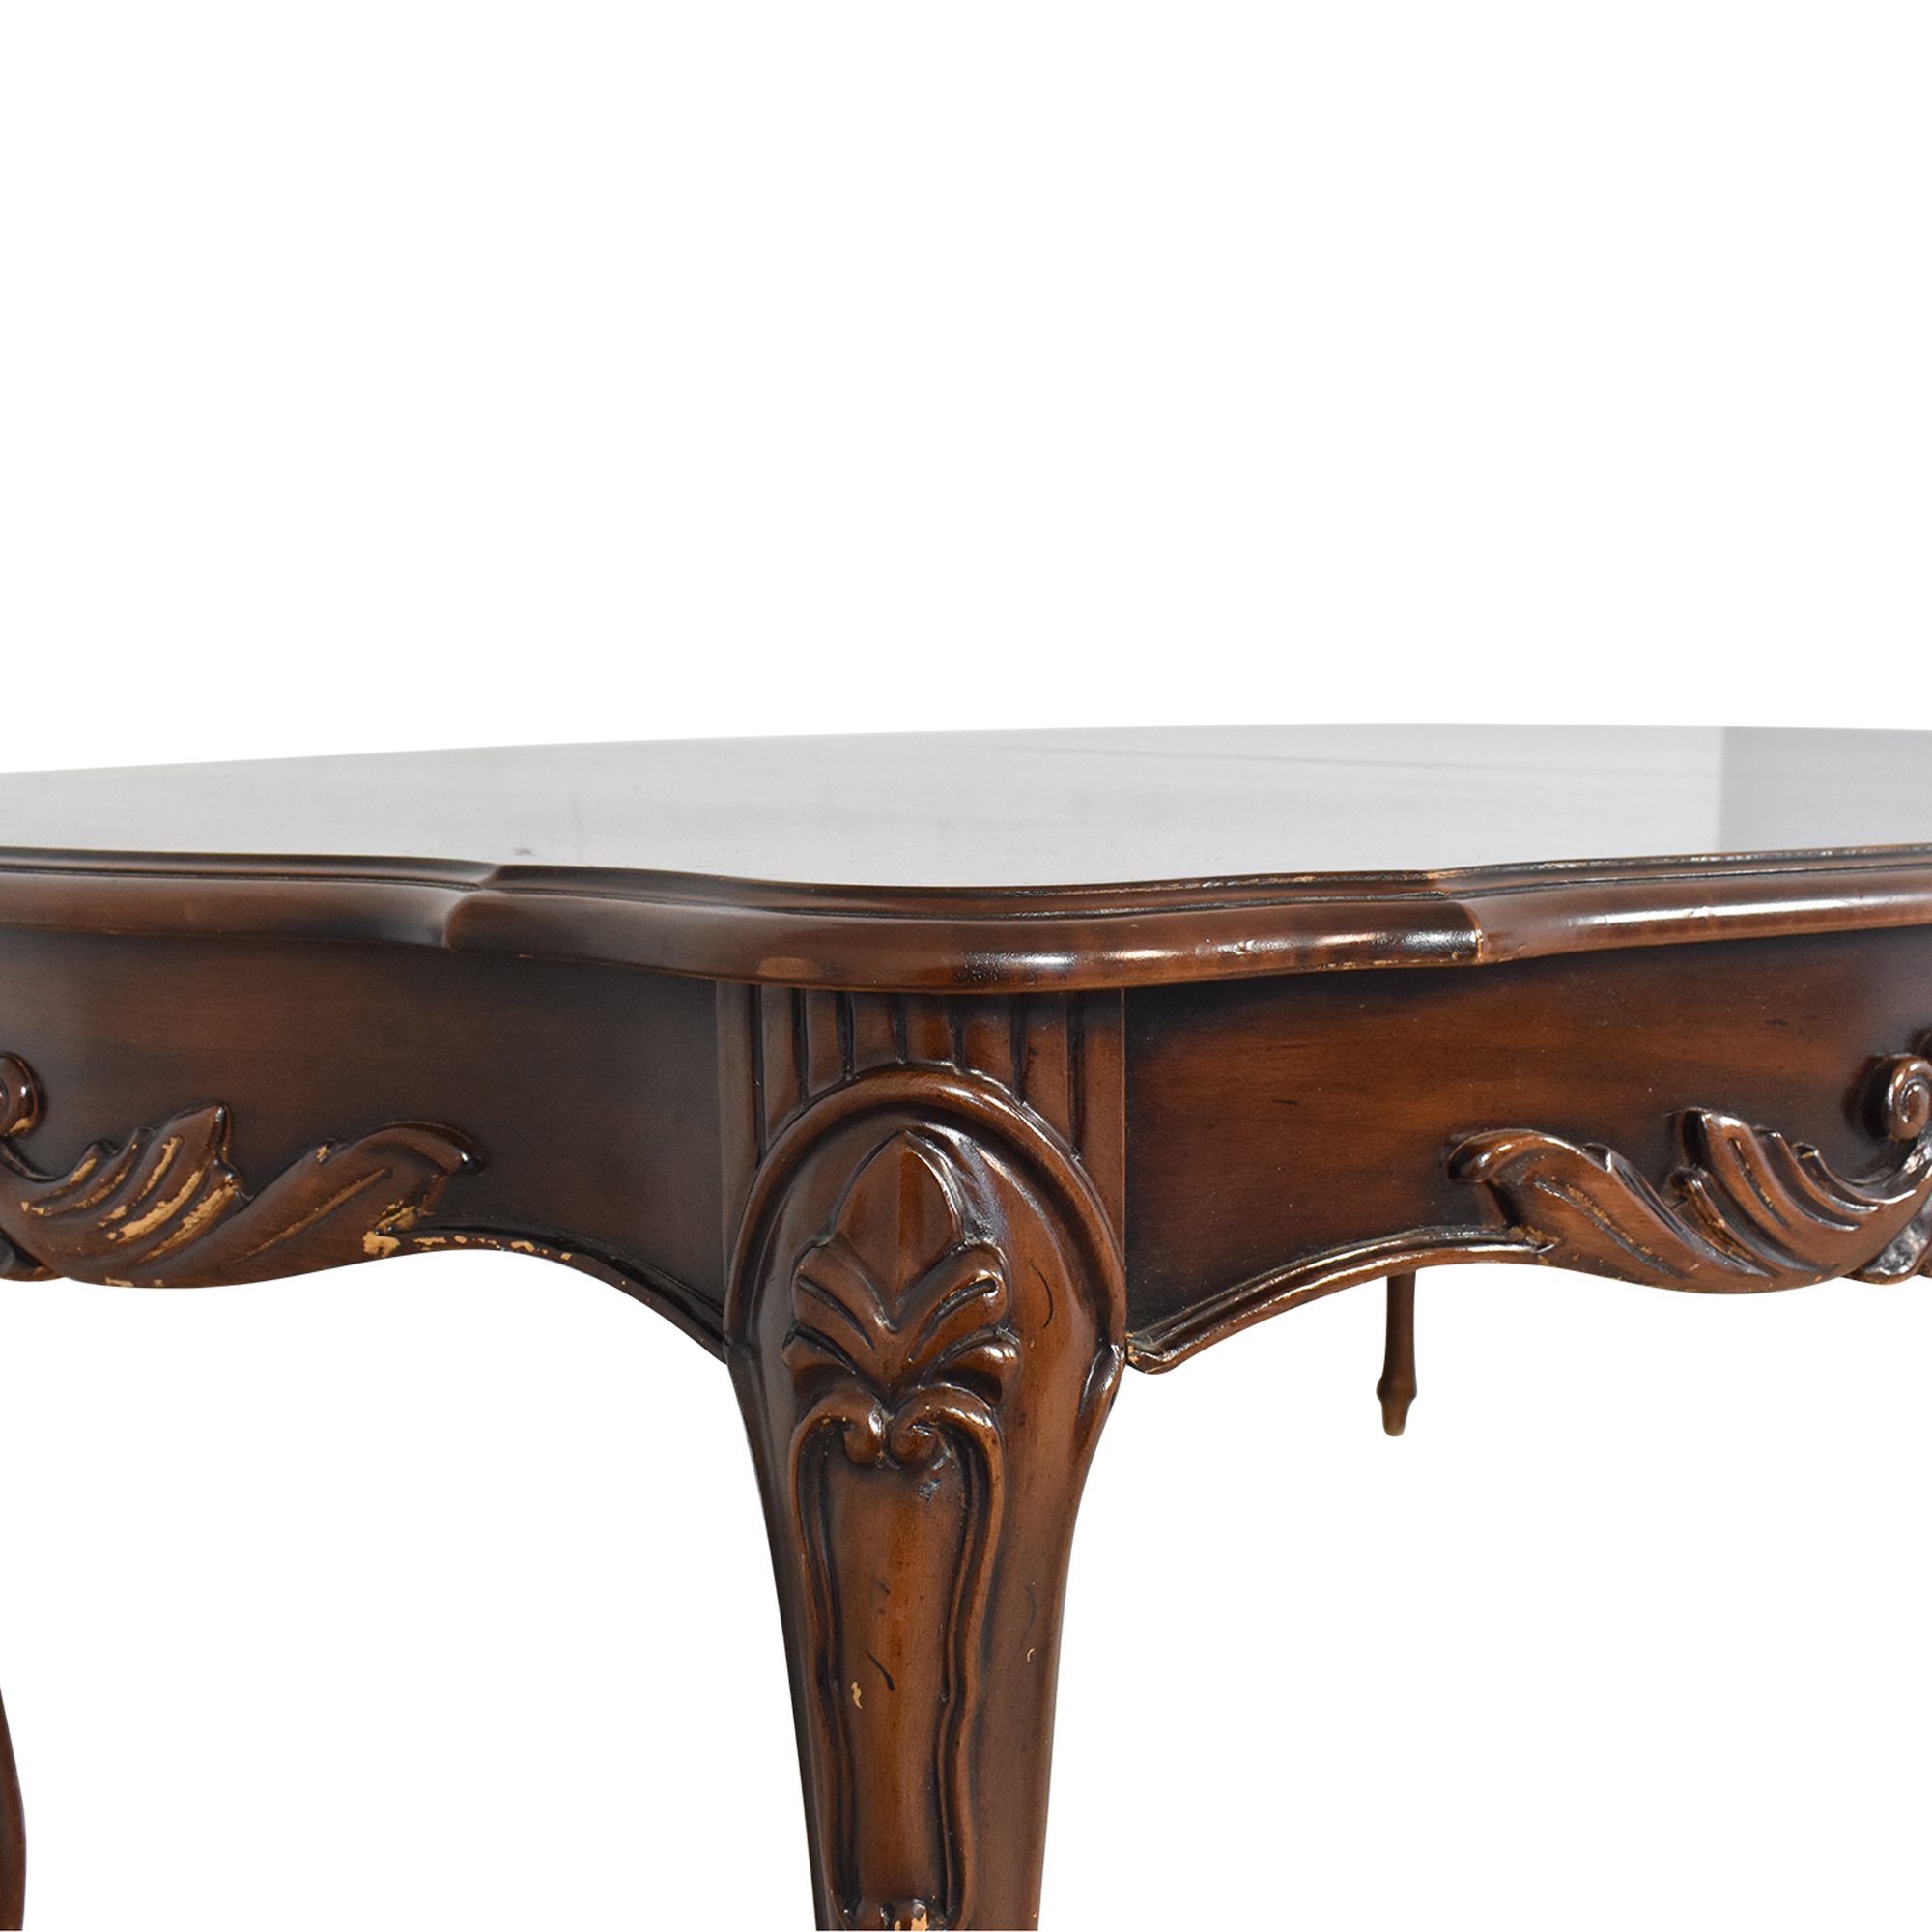 Union National Union National Dining Table dimensions